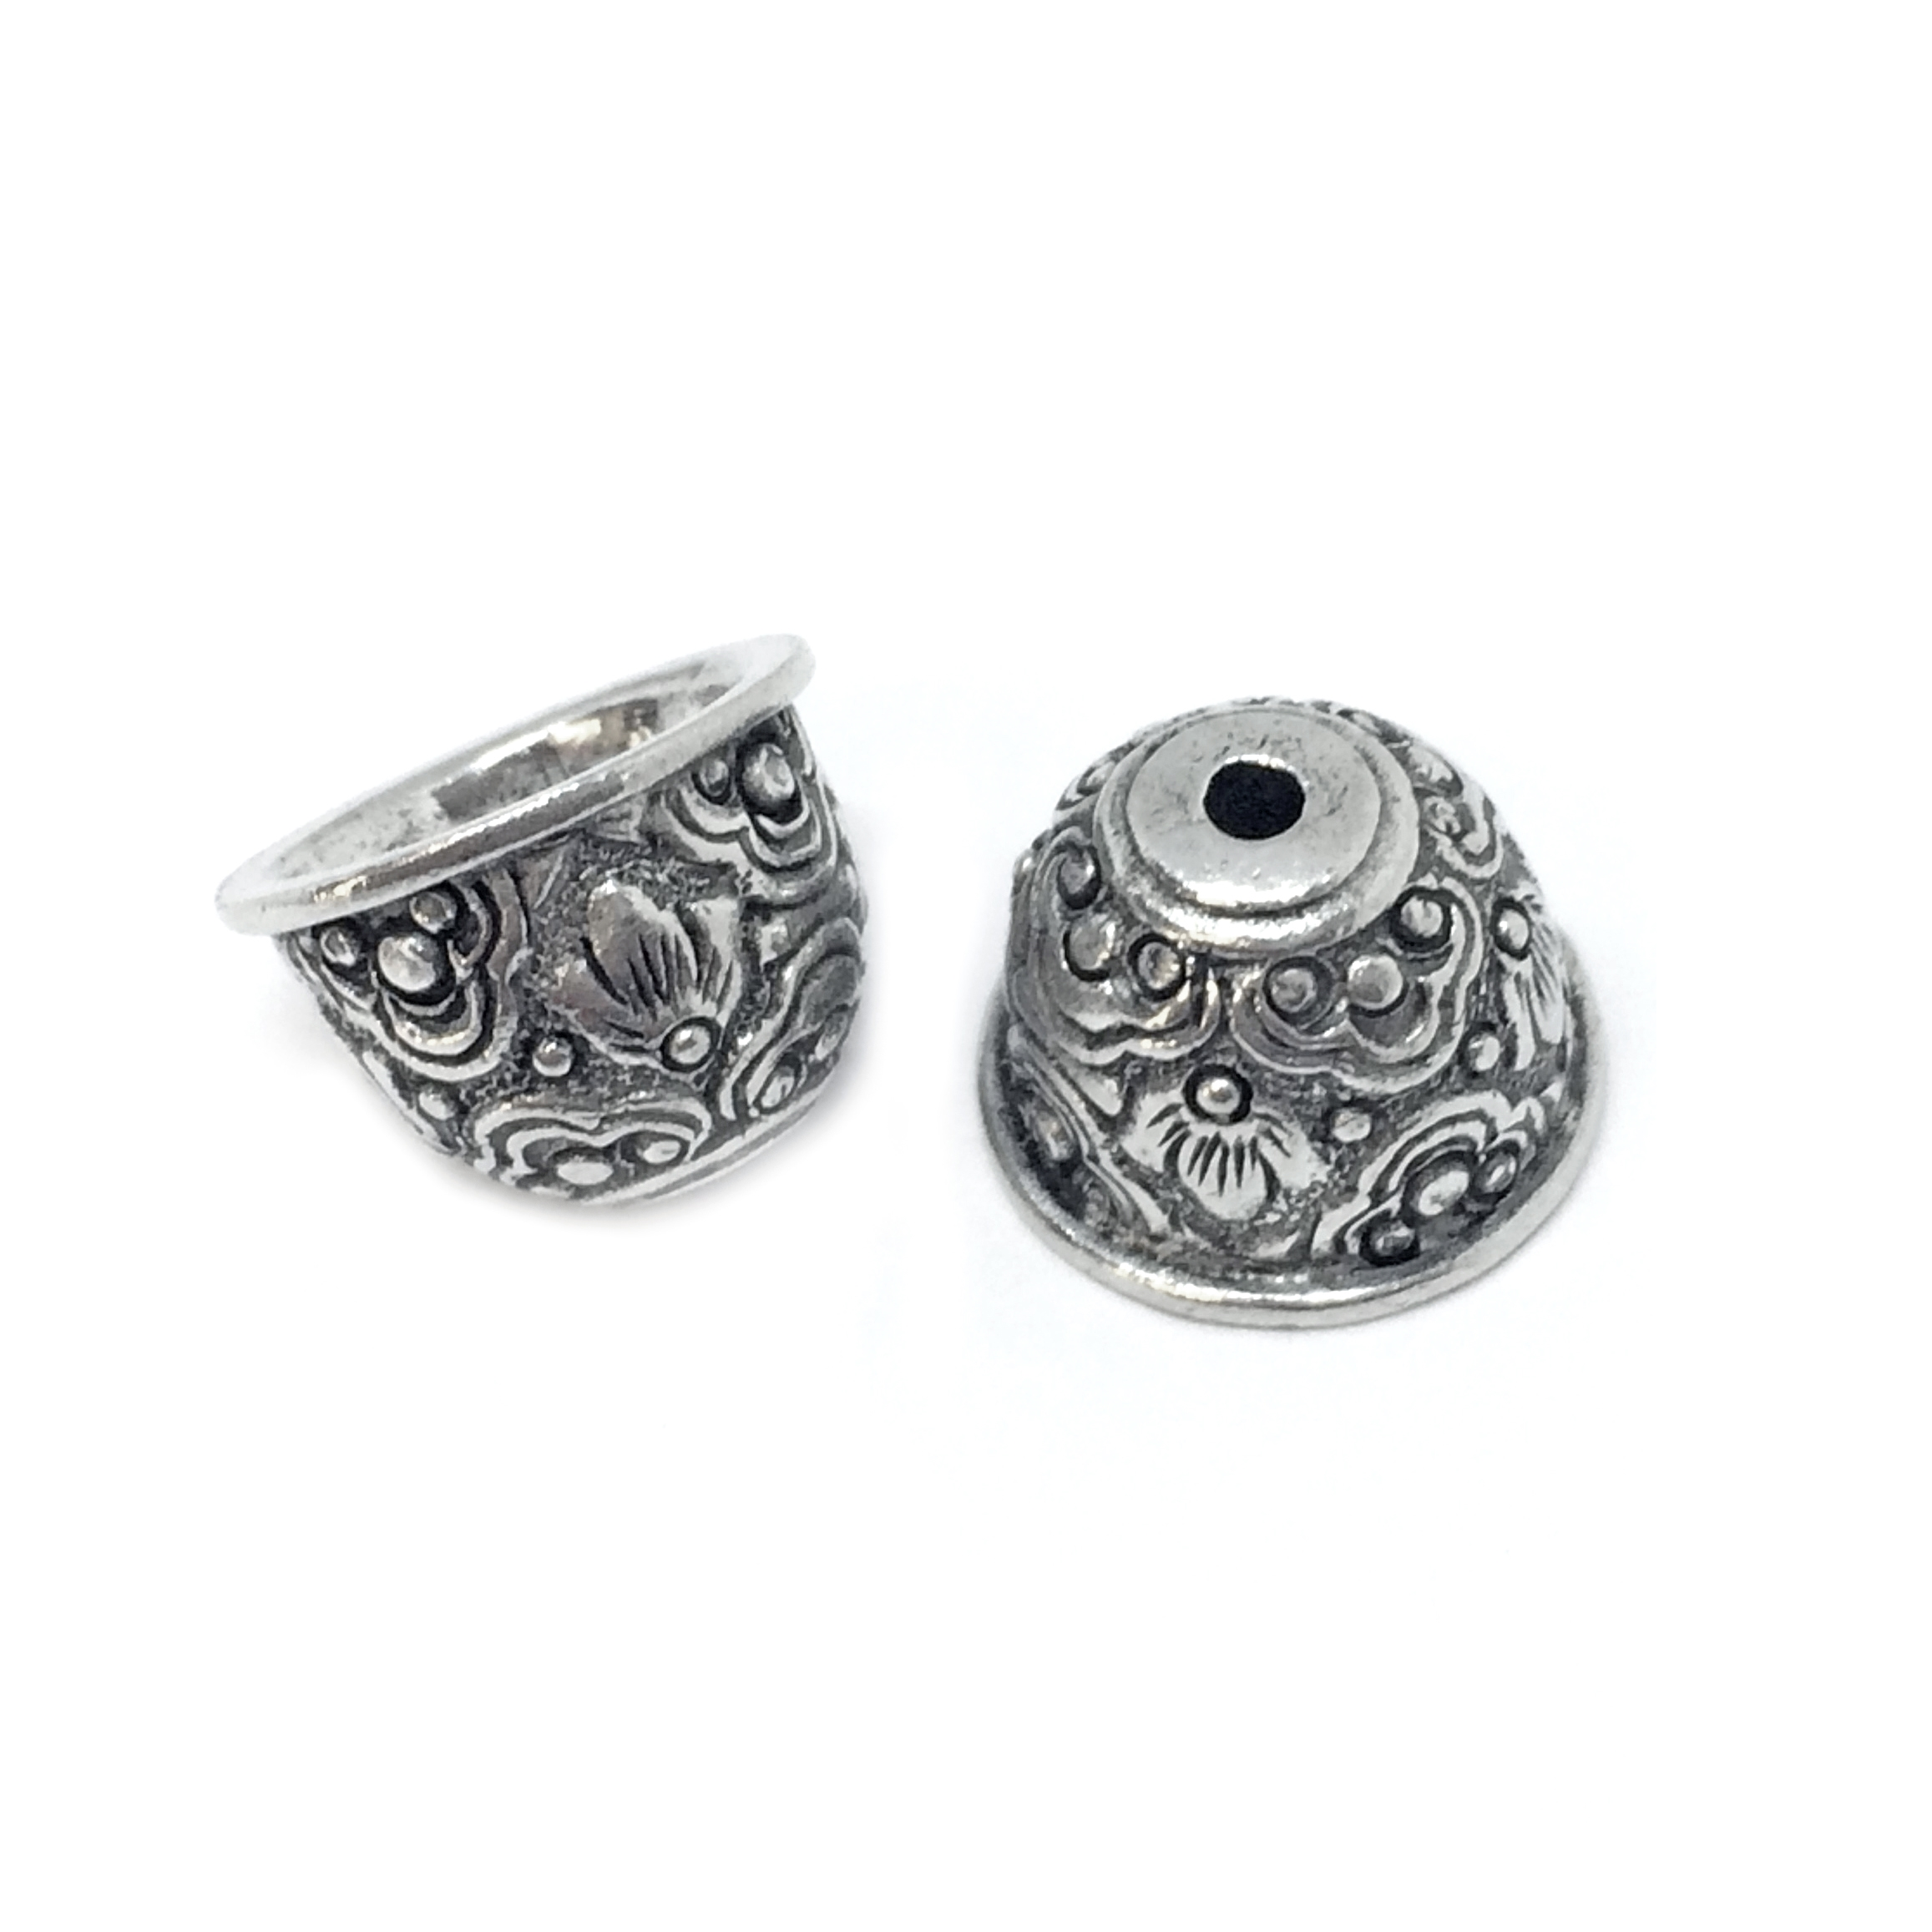 victorian floral bead cap, vintage pewter castings, B'sue by 1928, bead cap, floral, victorian, nickel free, lead free pewter, old silver, us made, antique silver,  vintage jewelry supplies, 1928 Jewelry, B'sue Boutiques, vintage style, 04219